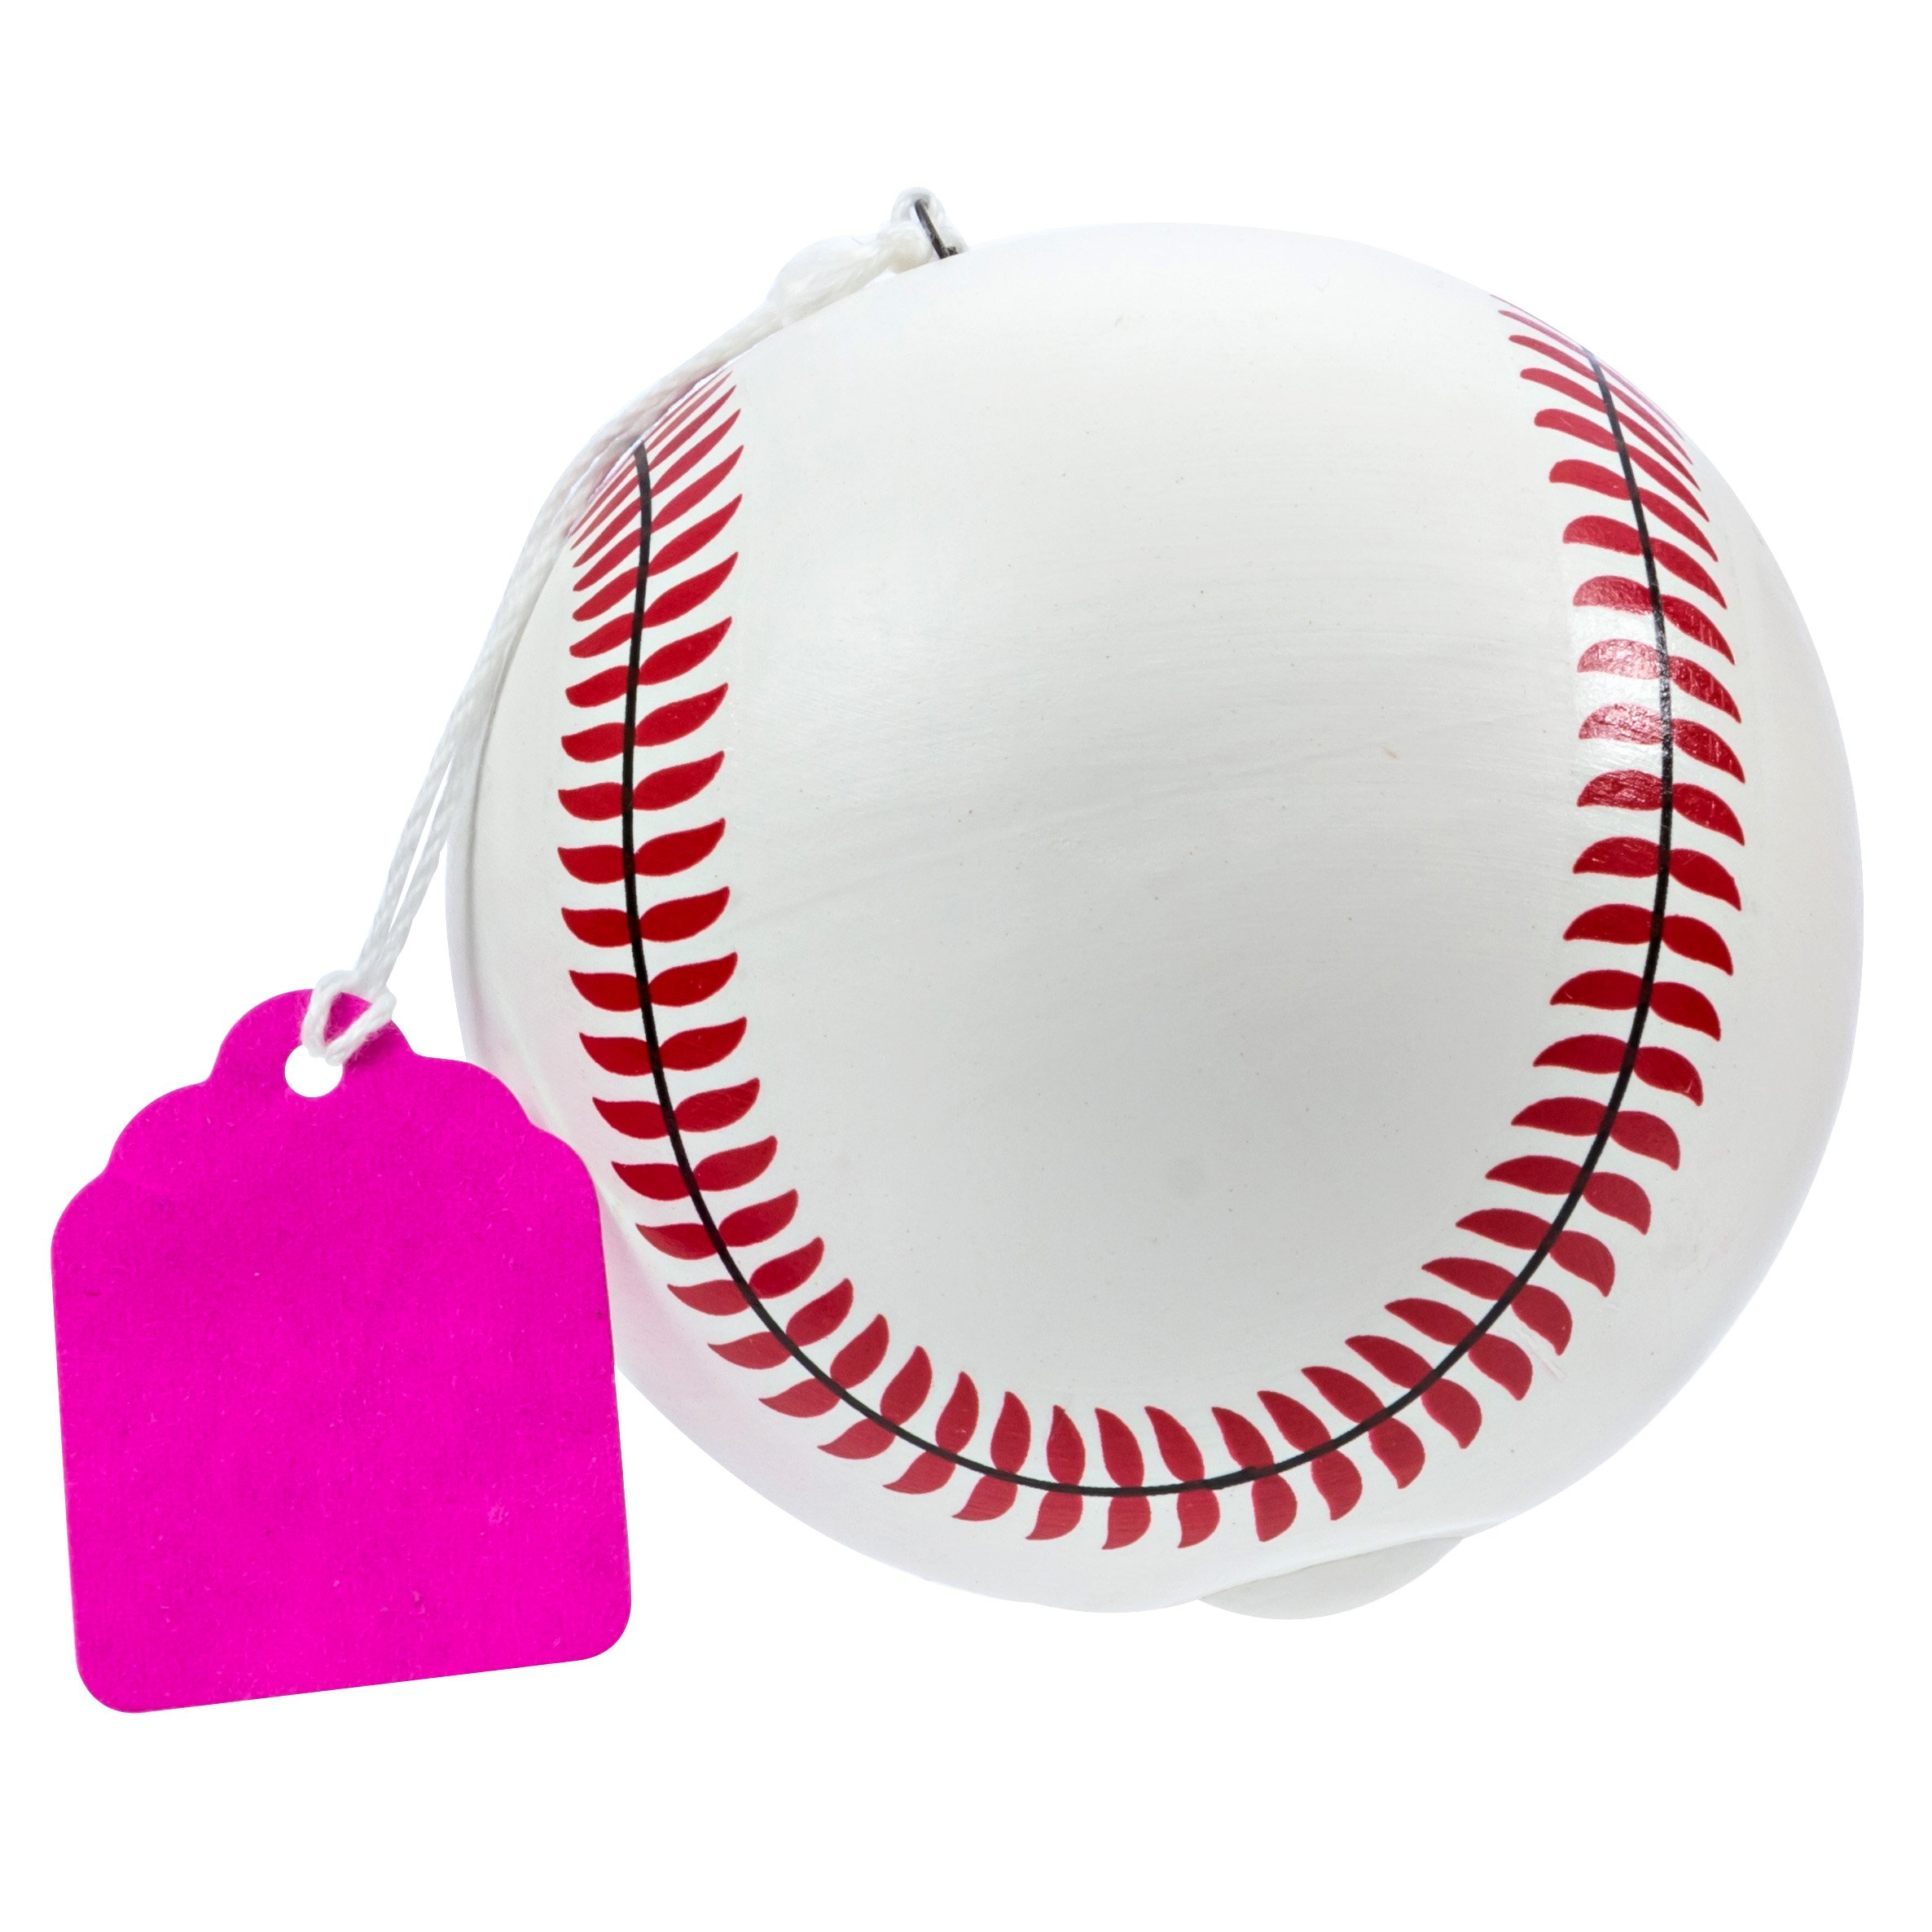 Ultimate Party Supplies Gender Reveal Baseballs Ball PINK Powder Gender Reveal Party TEAM PINK by Ultimate Party Supplies